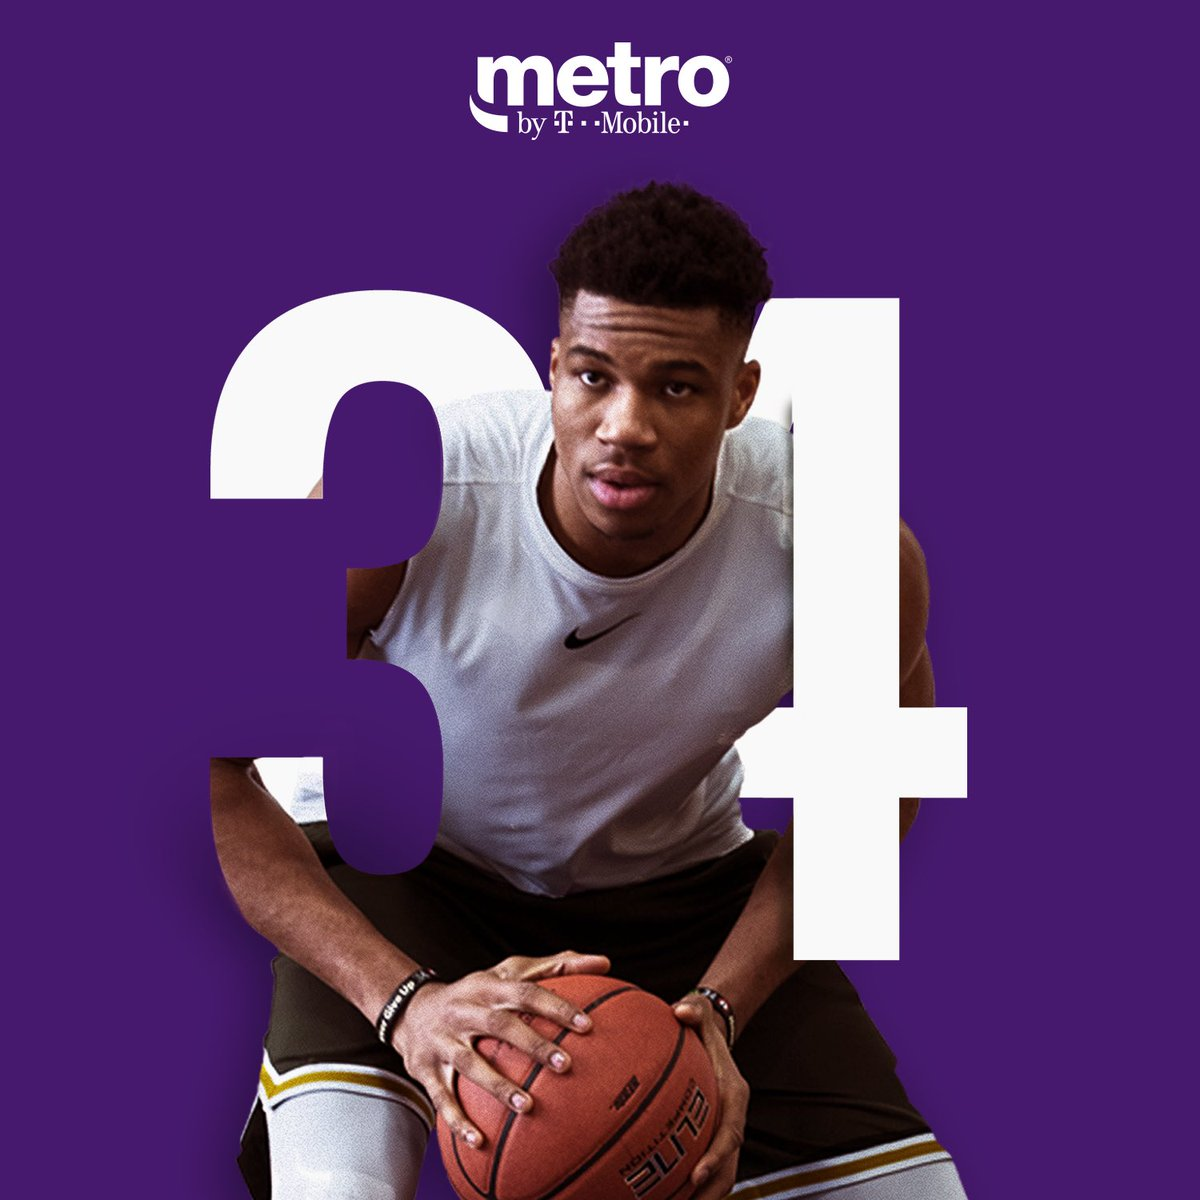 What a series, @Giannis_An34! Let's keep the #GreekFreak train rolling, good luck in the next round @Bucks! #TeamGiannis #EasternConferenceFinals